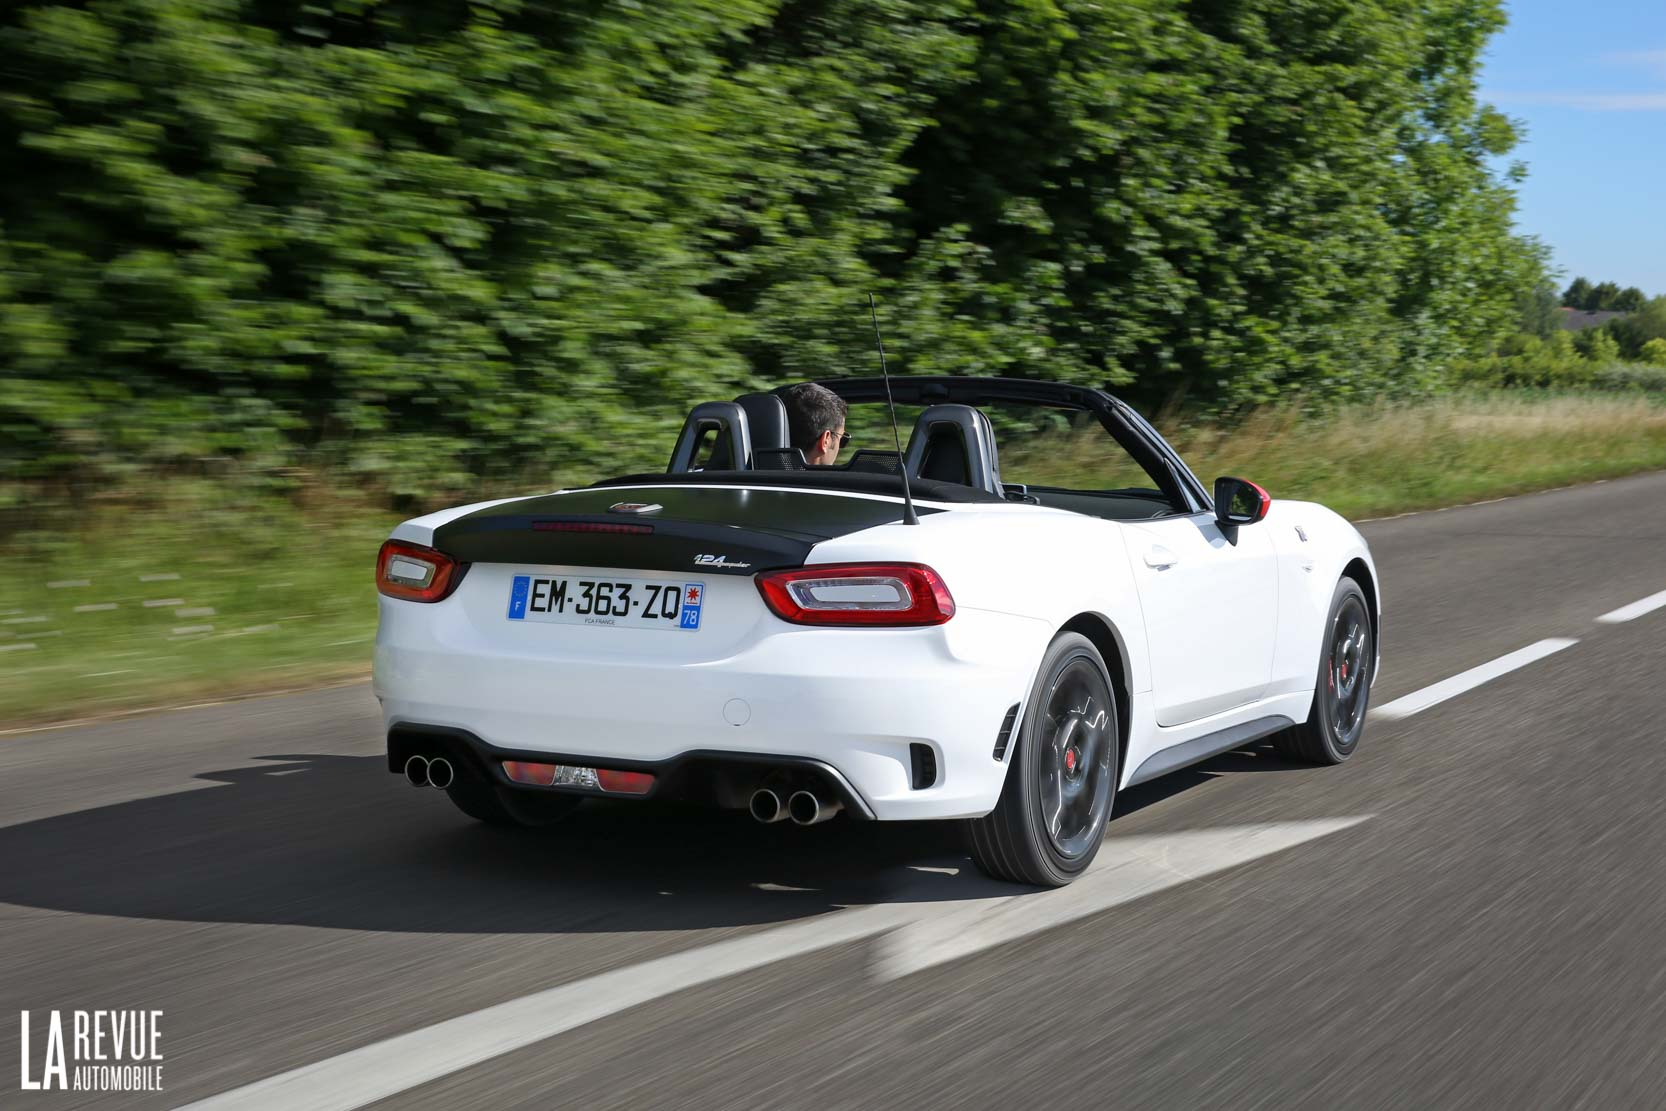 Exterieur_Abarth-124-Spider-2017_6